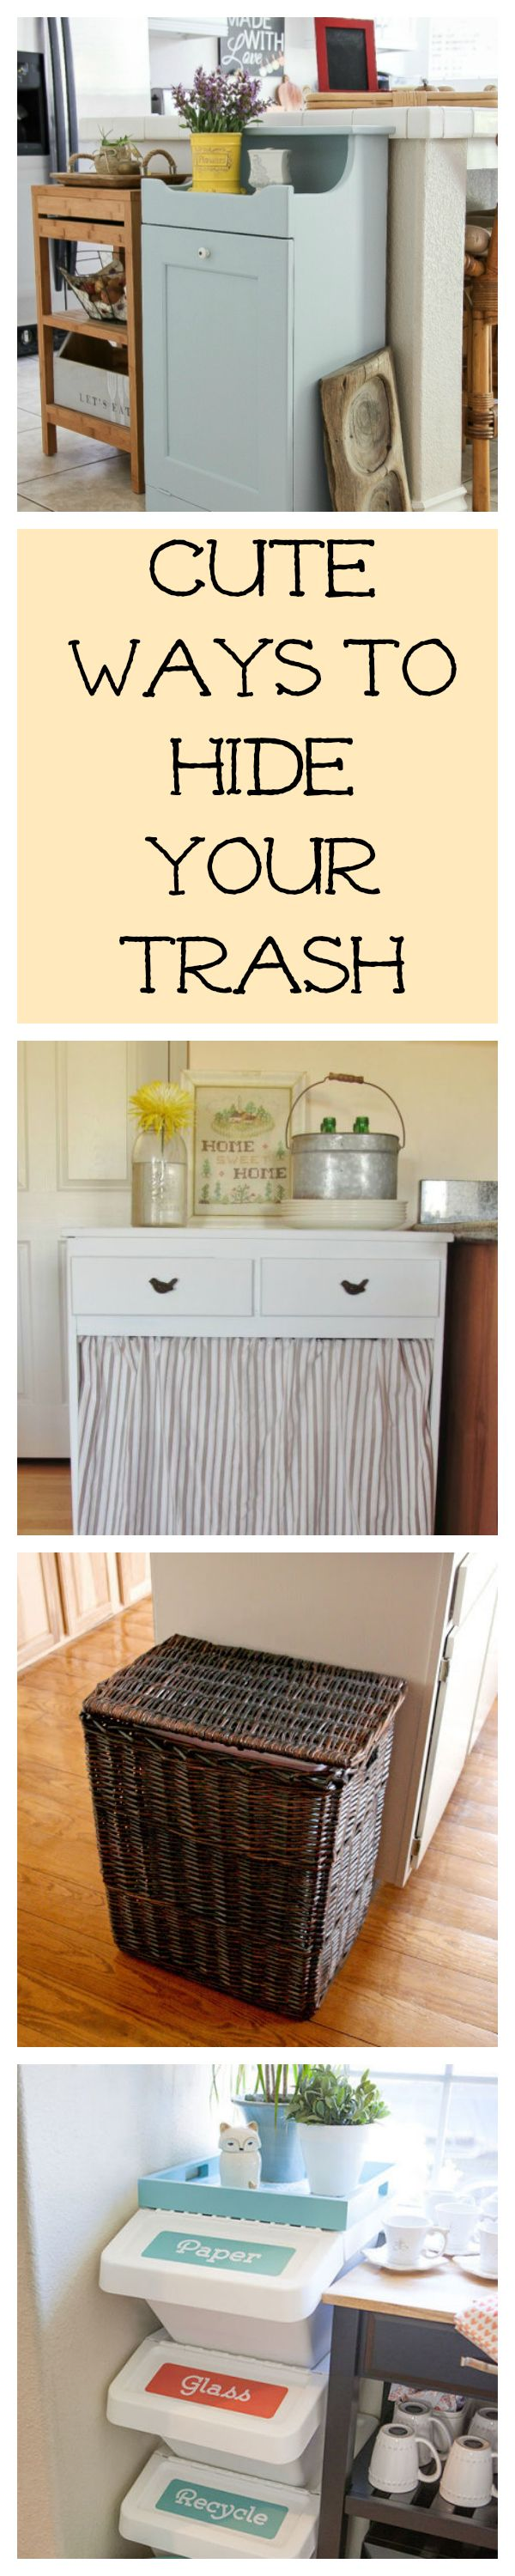 8 Sneaky Ways to Hide an Ugly Trash Can